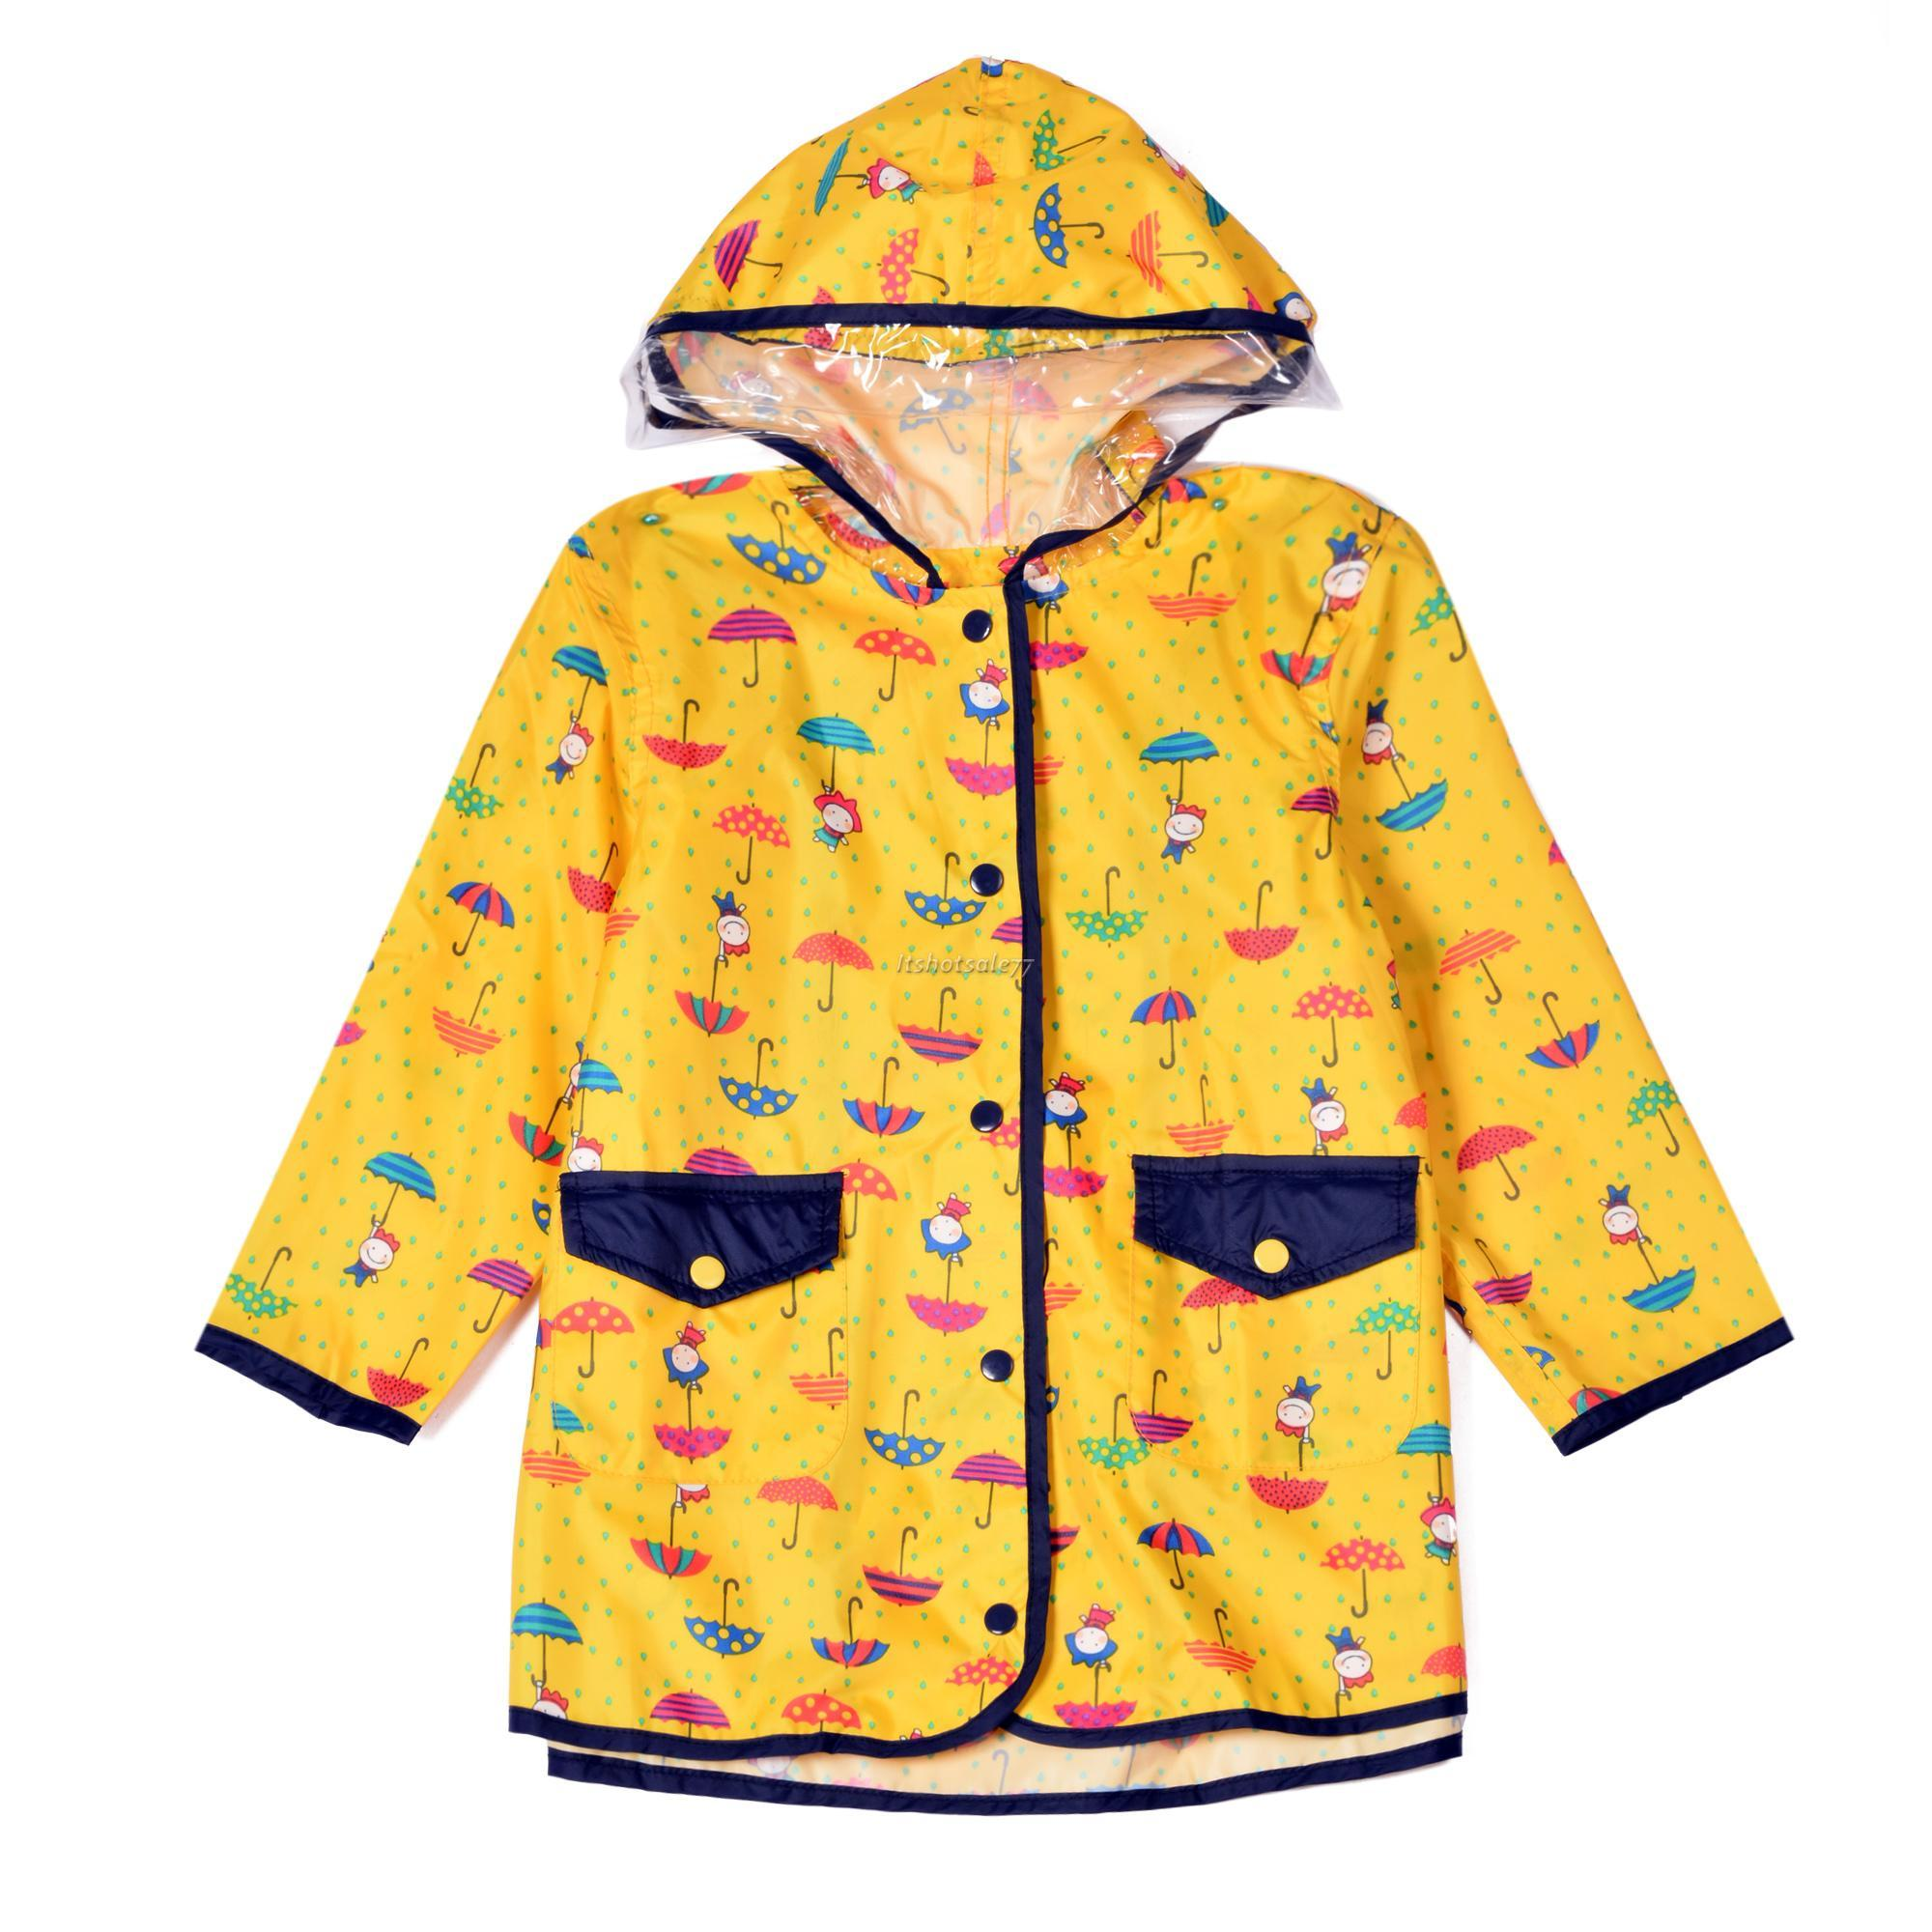 Kids Raincoat Waterproof Hooded Umbrella Pattern Cute